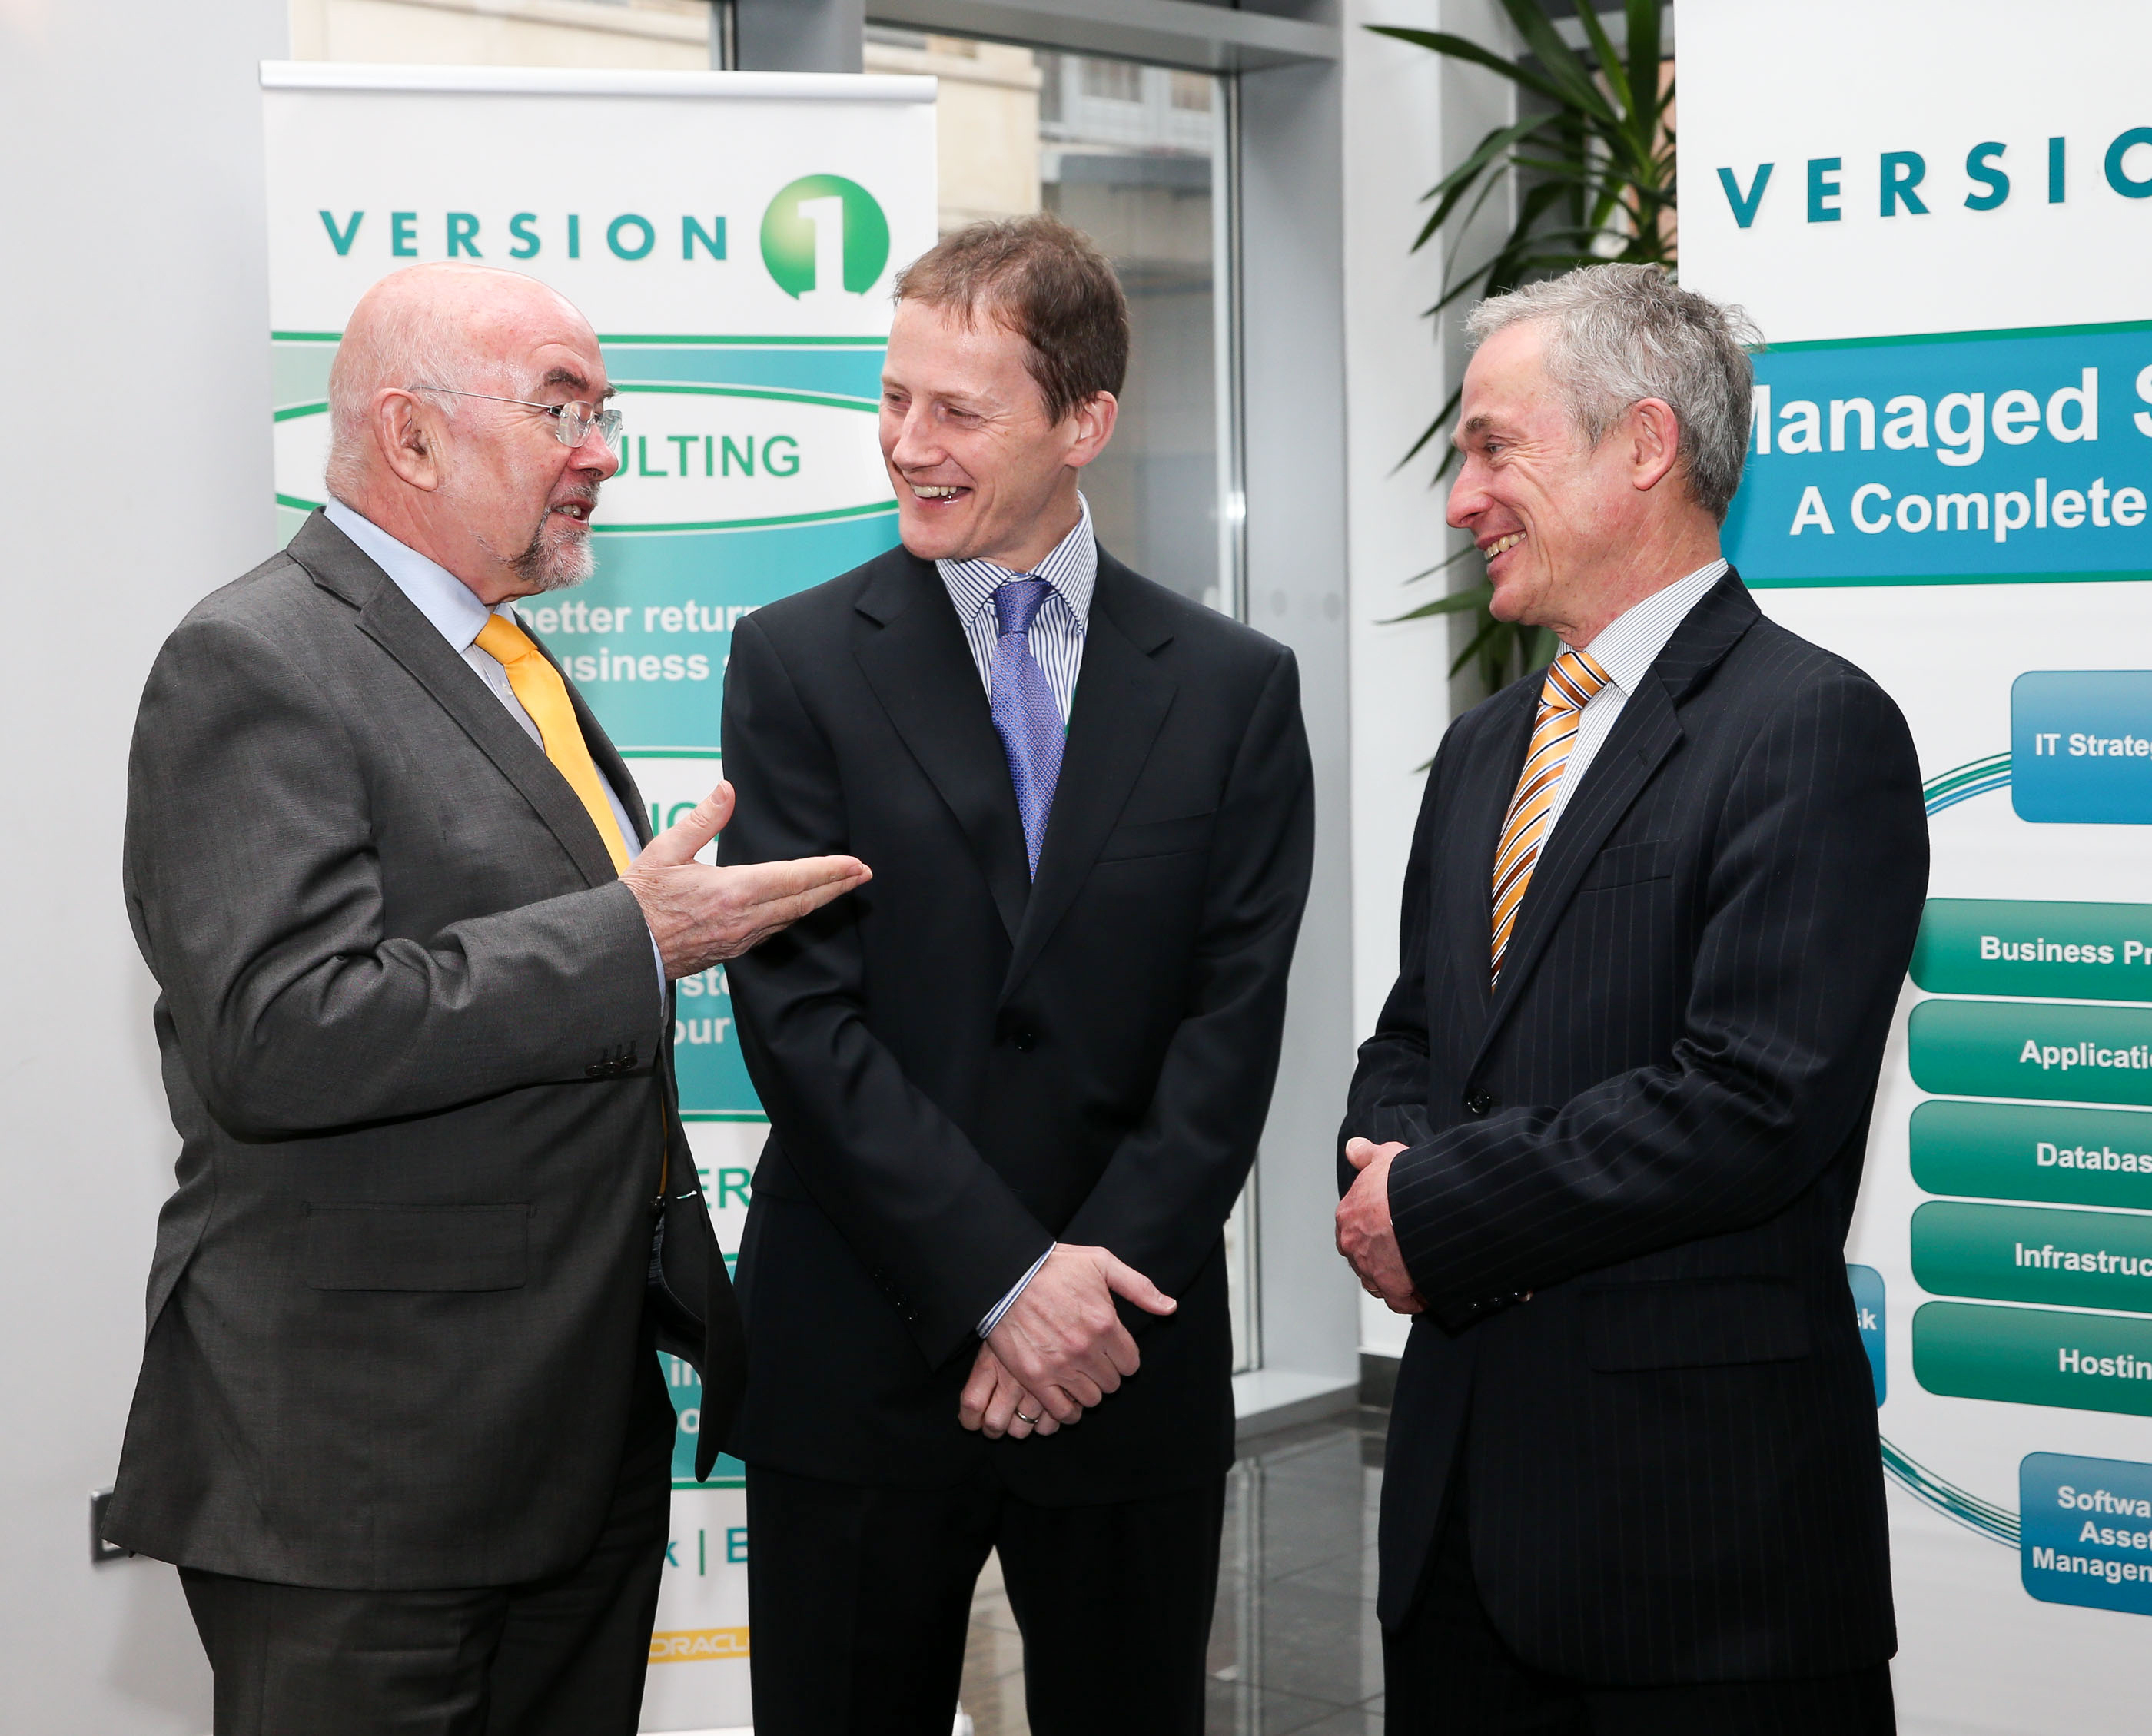 Version 1 CEO Justin Keatinge welcomes Minister for Jobs, Enterprise and Innovation, Richard Bruton TD, and the Minister for Education and Skills, Ruairi Quinn TD, to Version 1 Headquarters